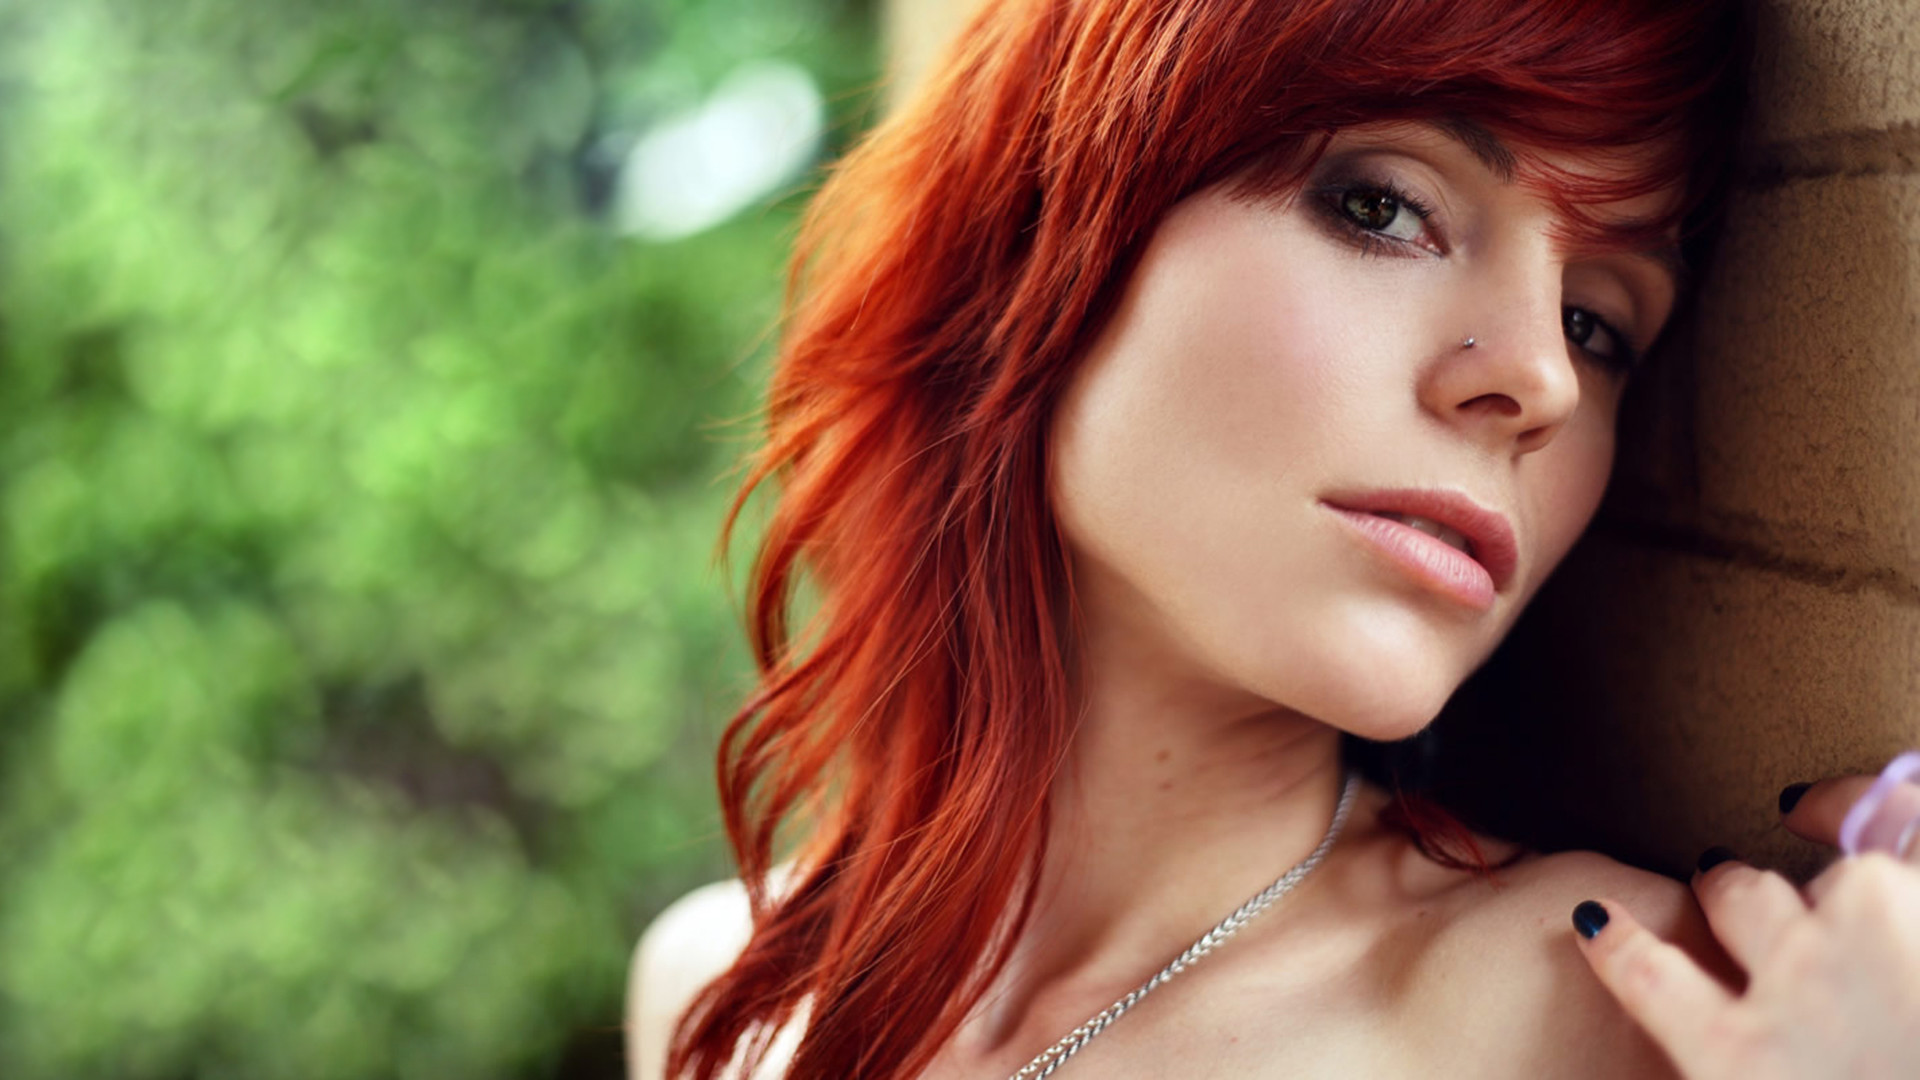 Res: 1920x1080, Redhead Wallpapers Hot Girls Wallpaper